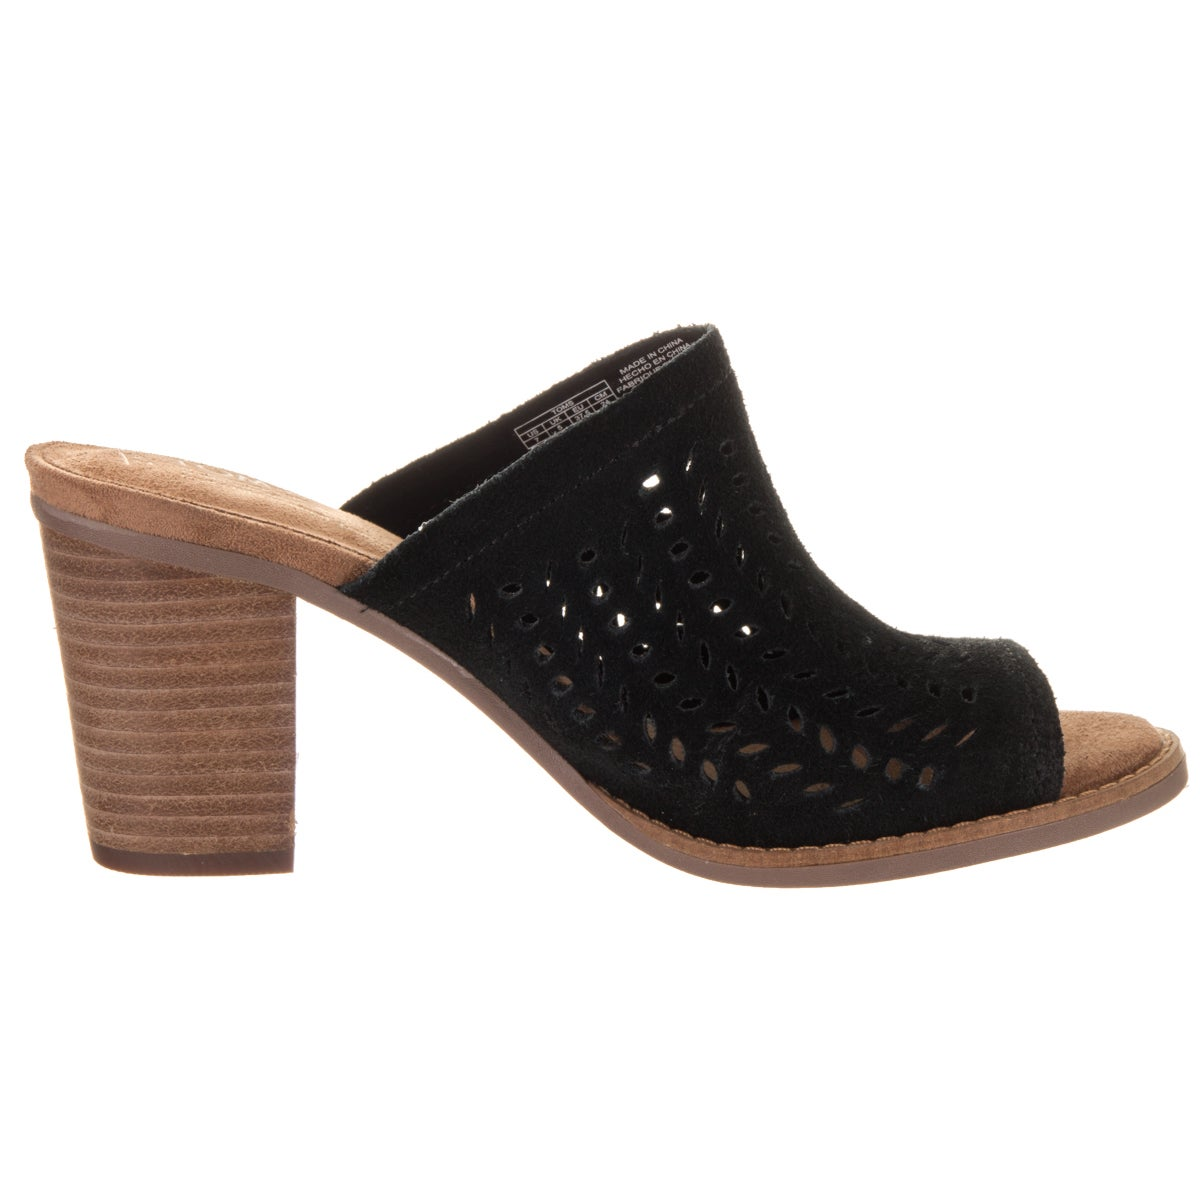 4d794132913 Shop Toms Women s Majorca Mule Black Suede Sandals - Free Shipping Today -  Overstock - 14231007